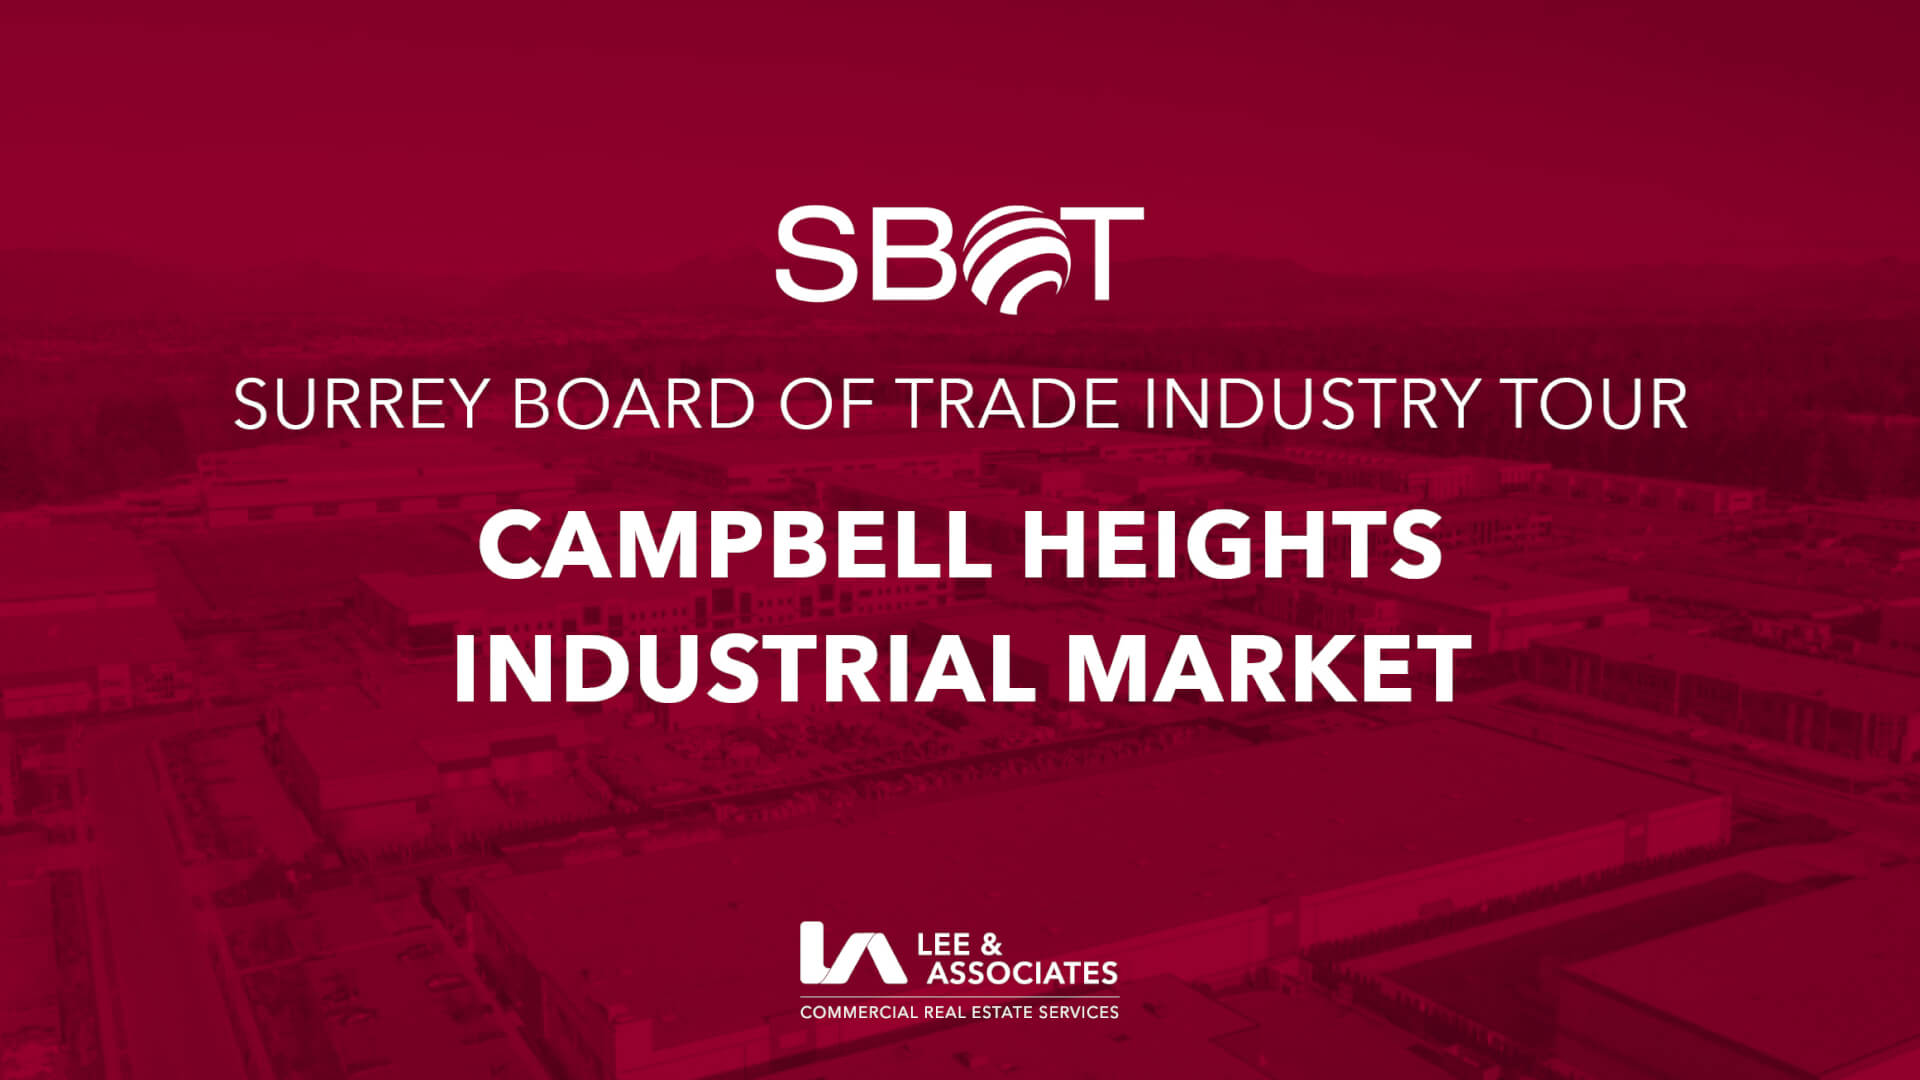 Campbell Heights Industrial Market Overview